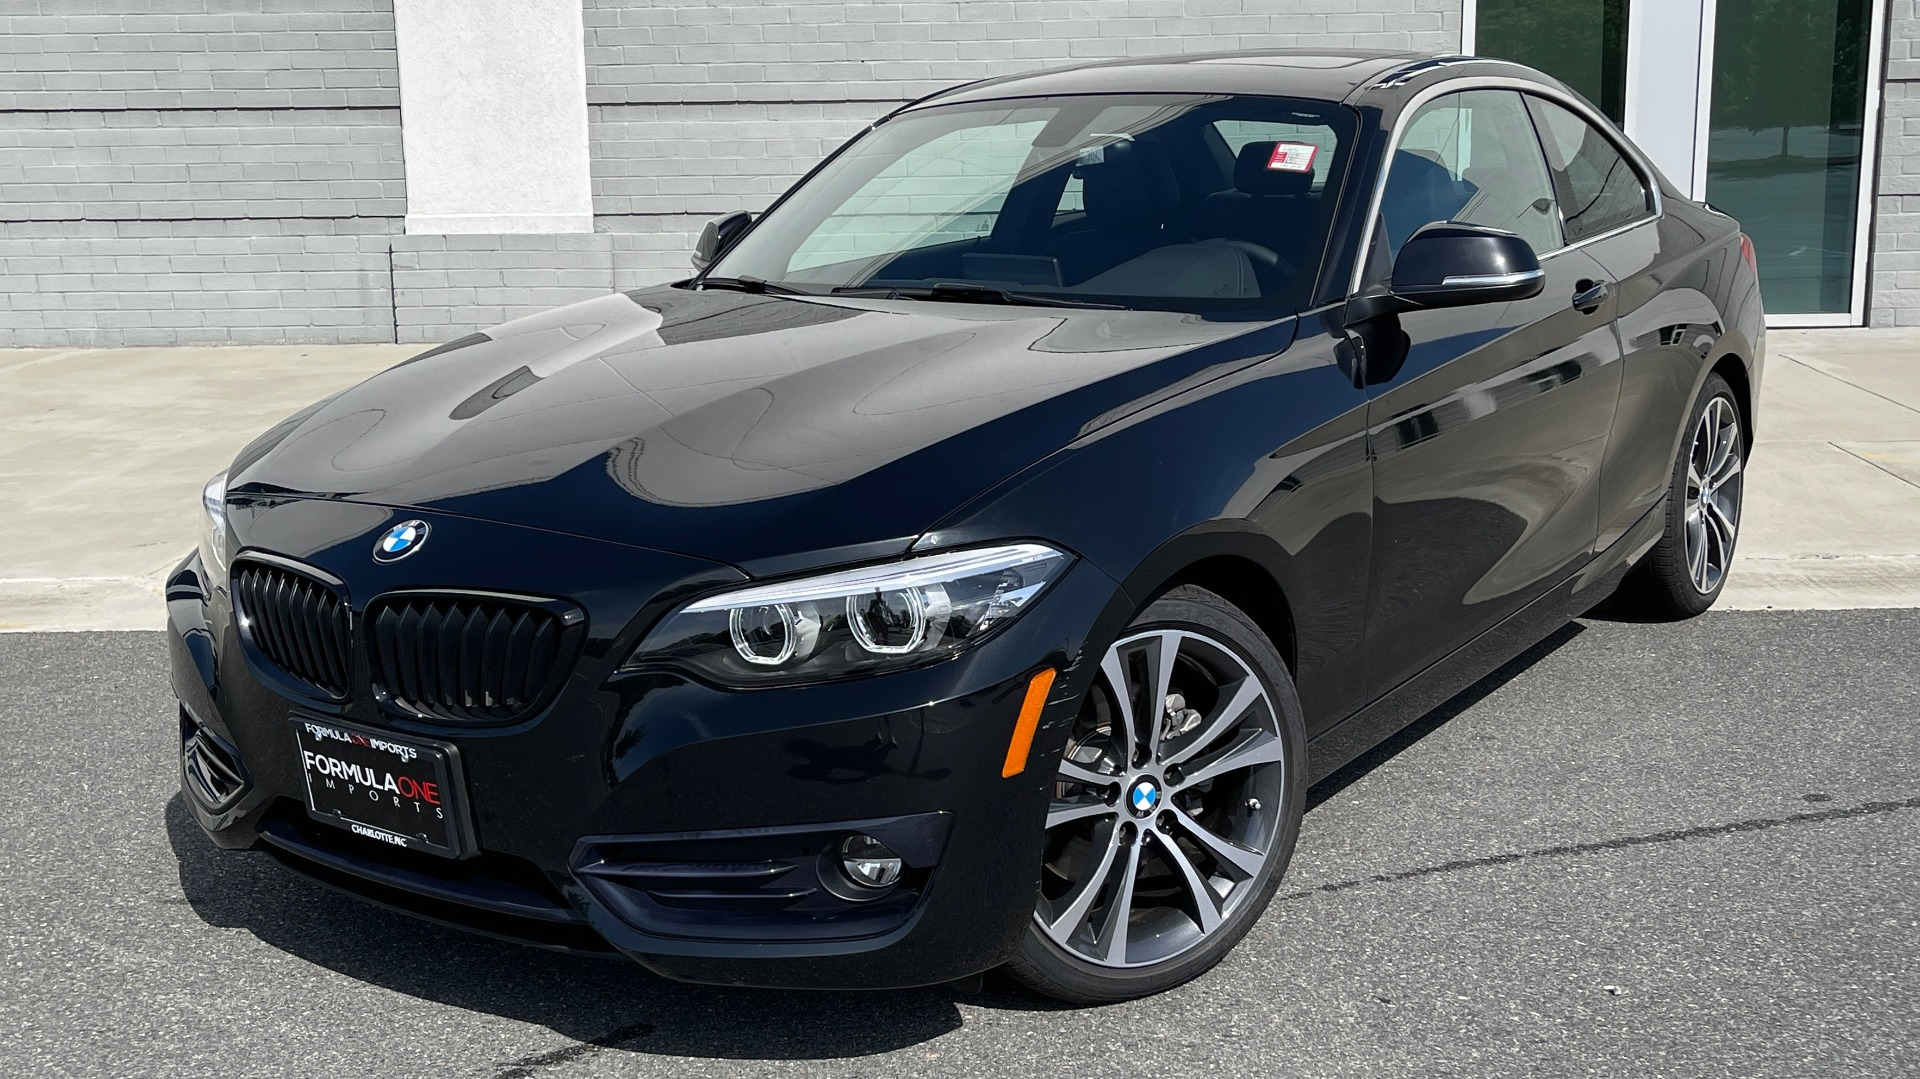 Used 2018 BMW 2 SERIES 230I XDRIVE PREMIUM / CONV PKG / NAV / SUNROOF / REARVIEW for sale $30,795 at Formula Imports in Charlotte NC 28227 1